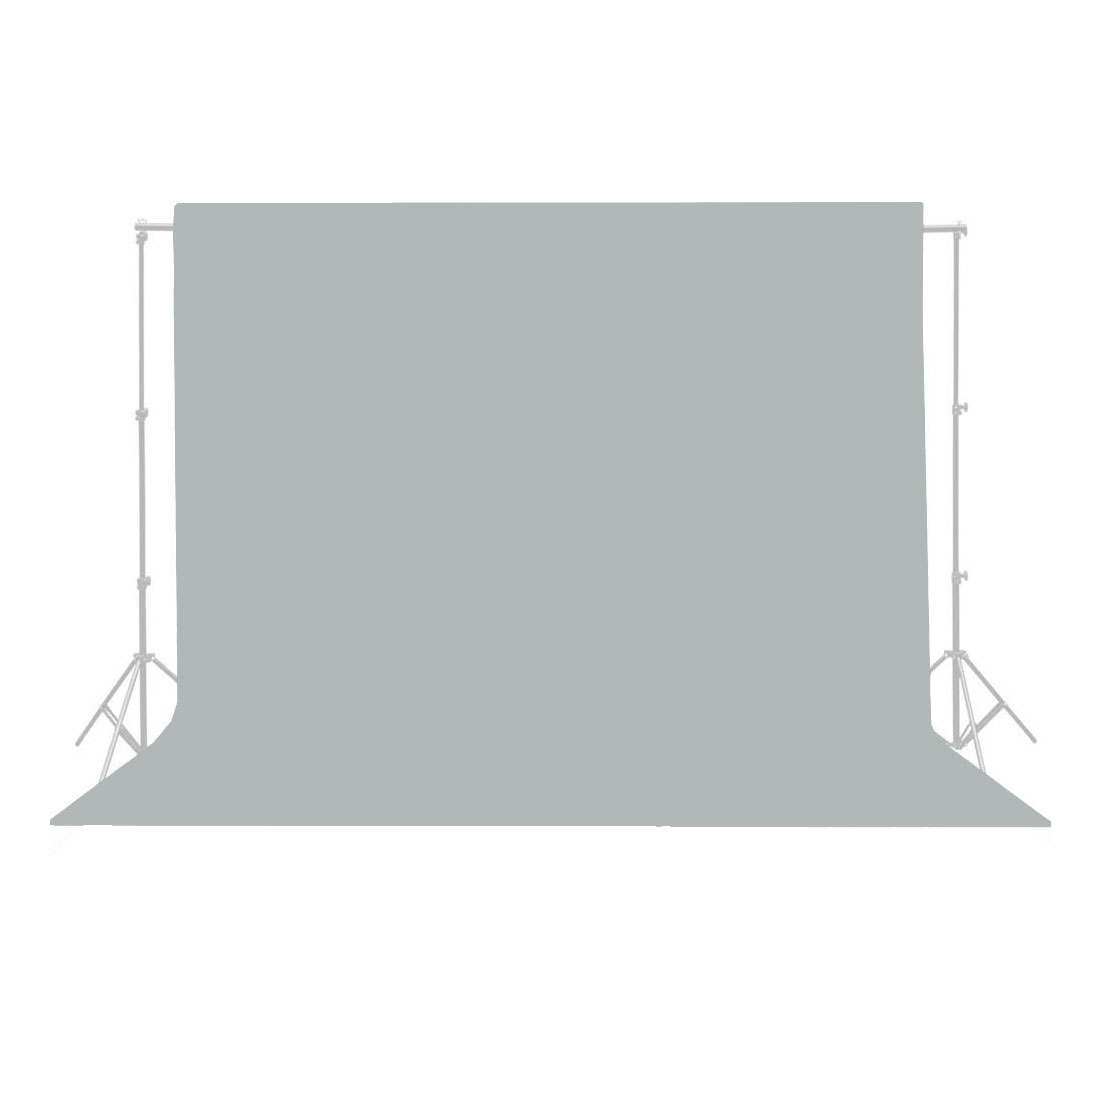 5Ftx10Ft Gray Non-woven Fabric Photography Backdrop Background Cloth